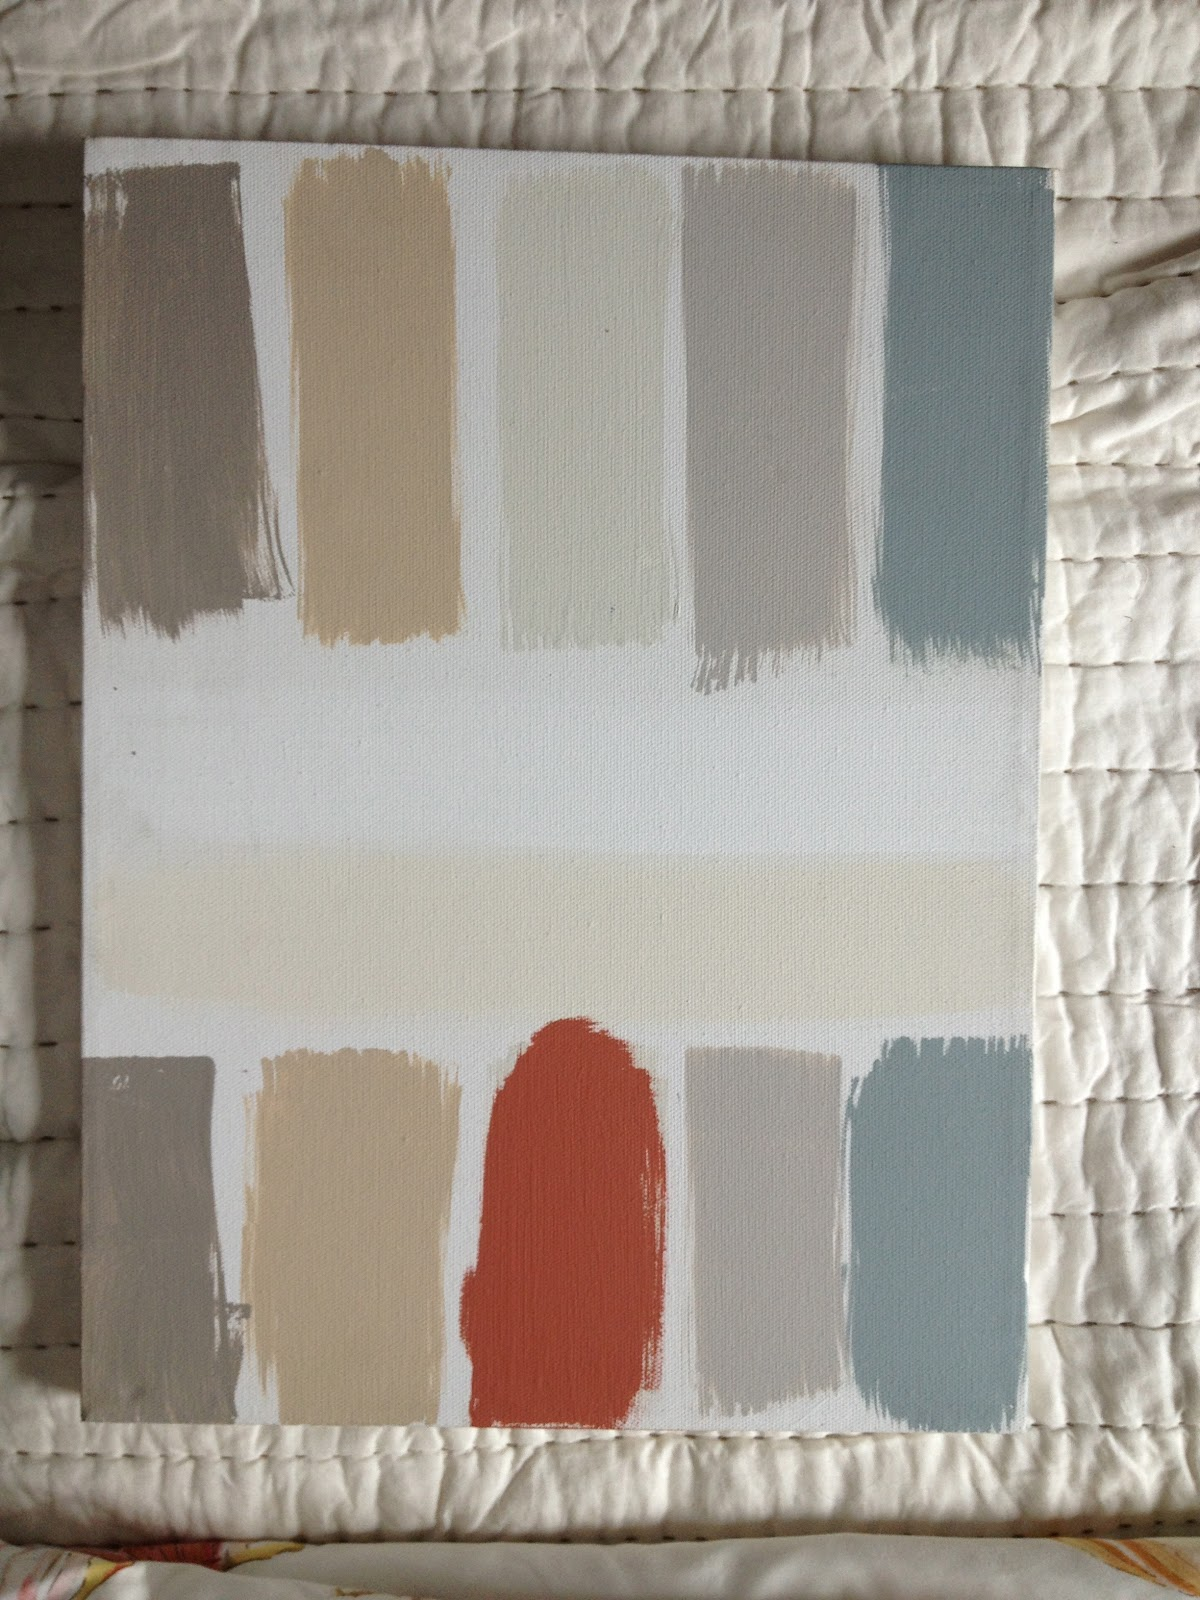 Benjamin Moore Paints Ulus Cloud Shaker Beige Wedding Chapel Kentucky Haze